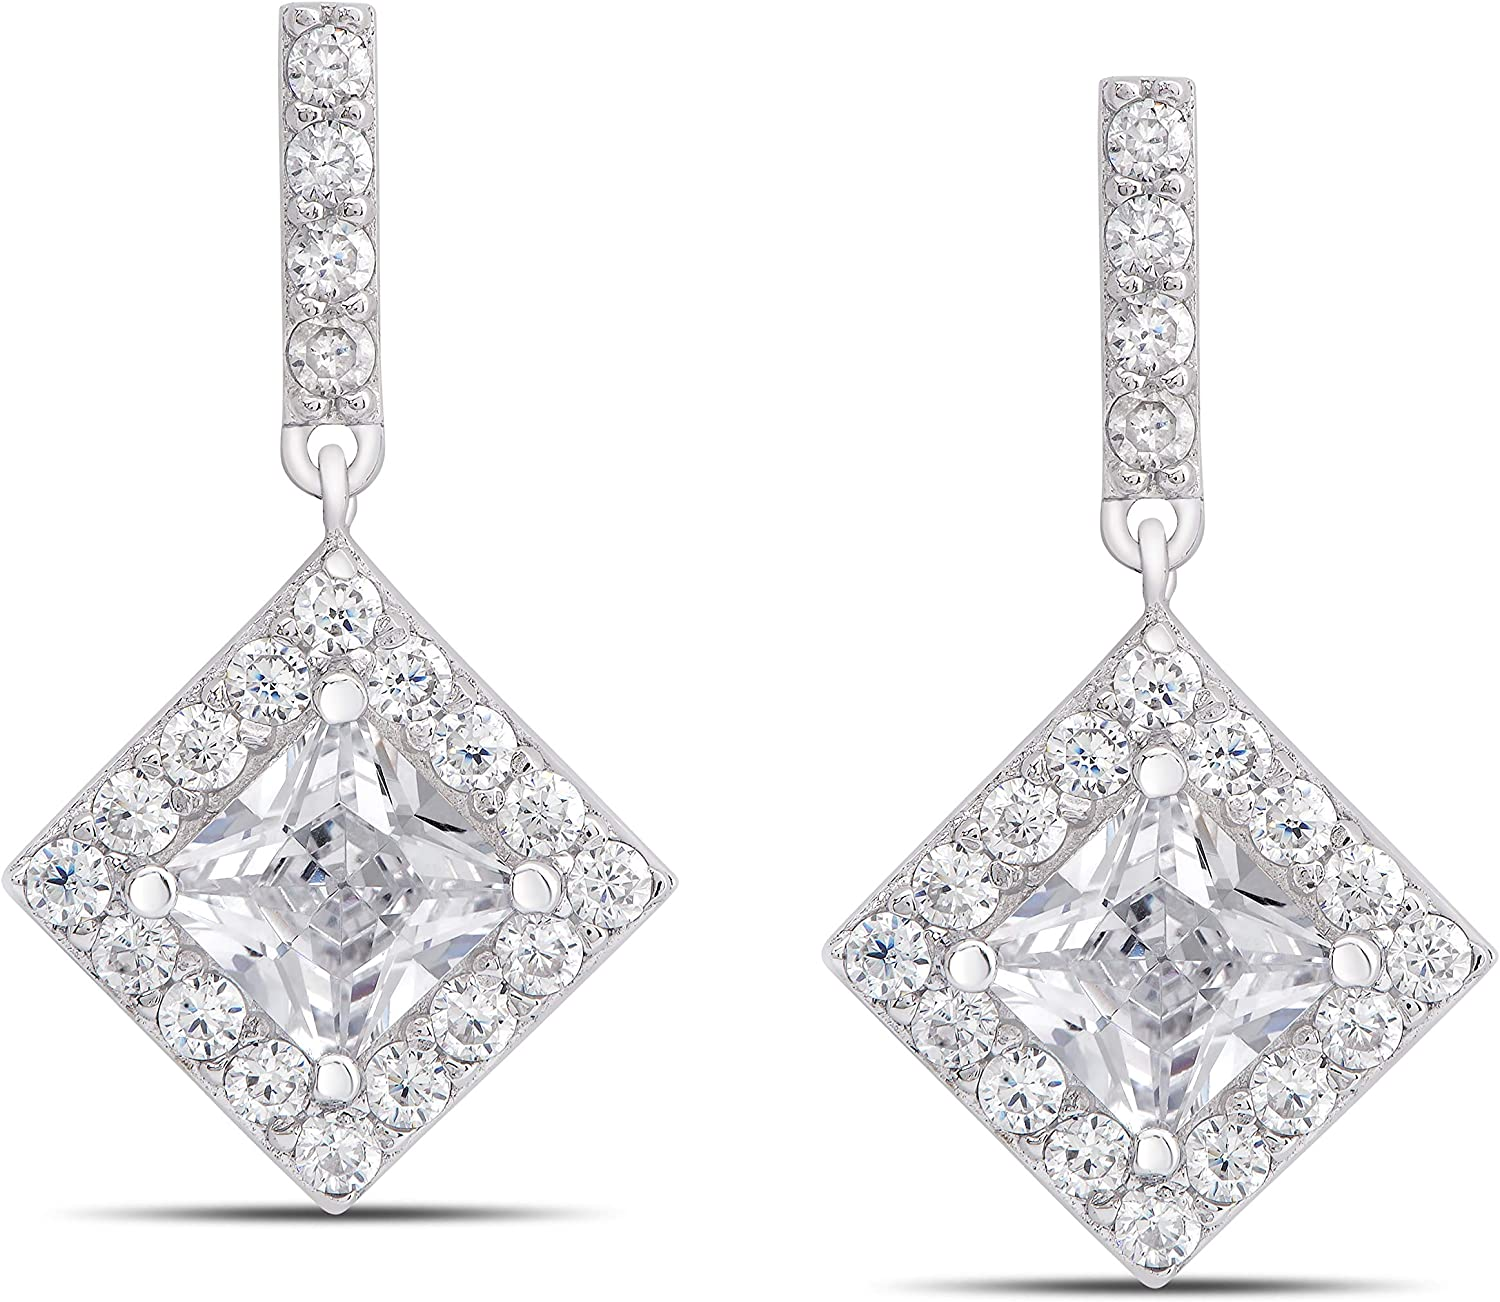 Round Cut 1mm Aaa White Cubic Zirconia 925 Sterling Silver Earrings